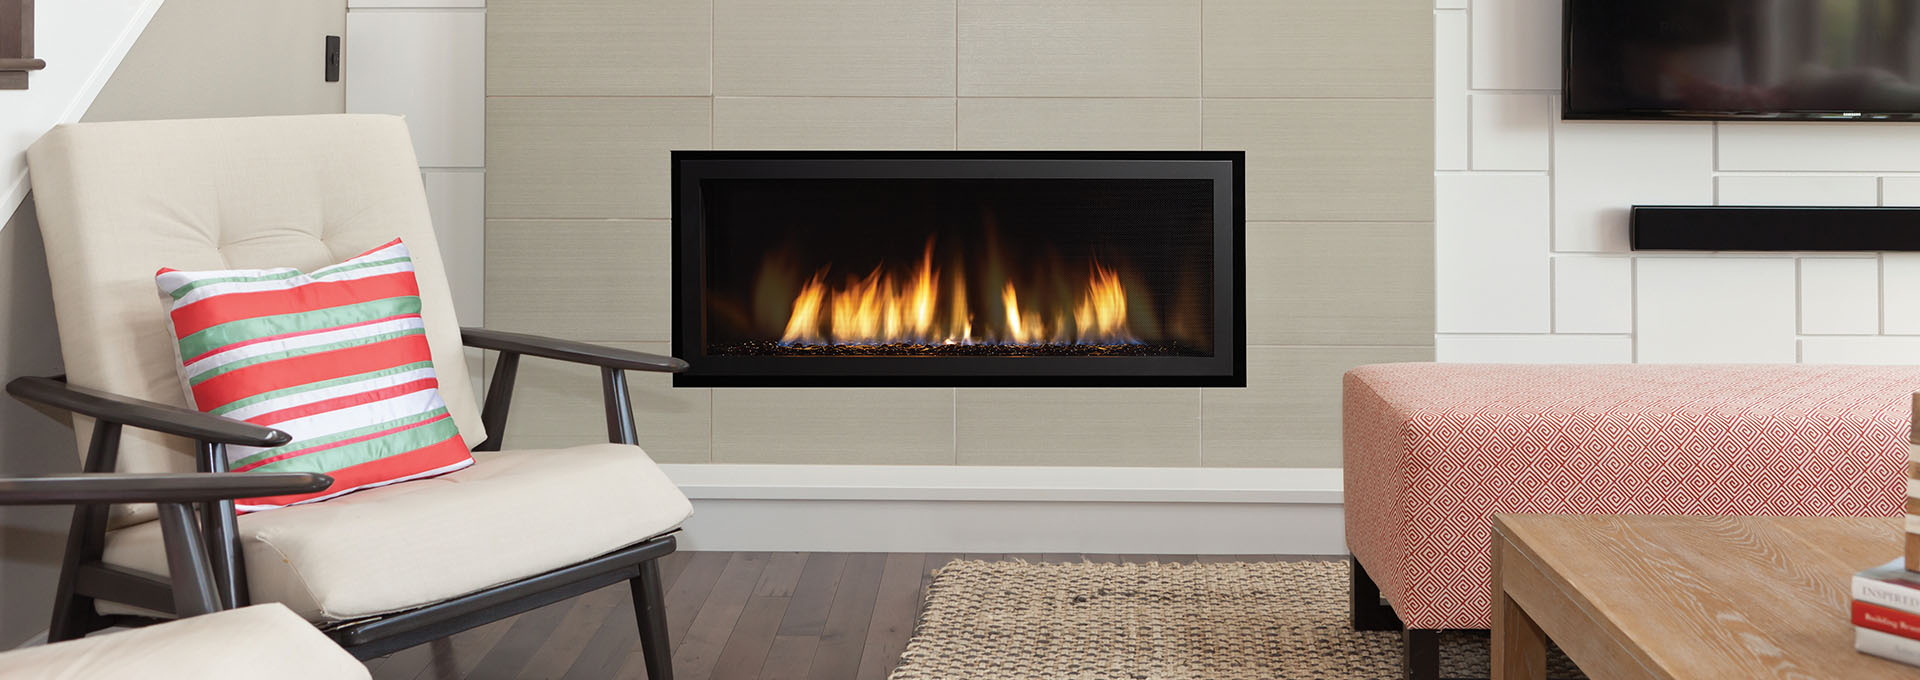 Small Contemporary Gas Fireplace Inserts